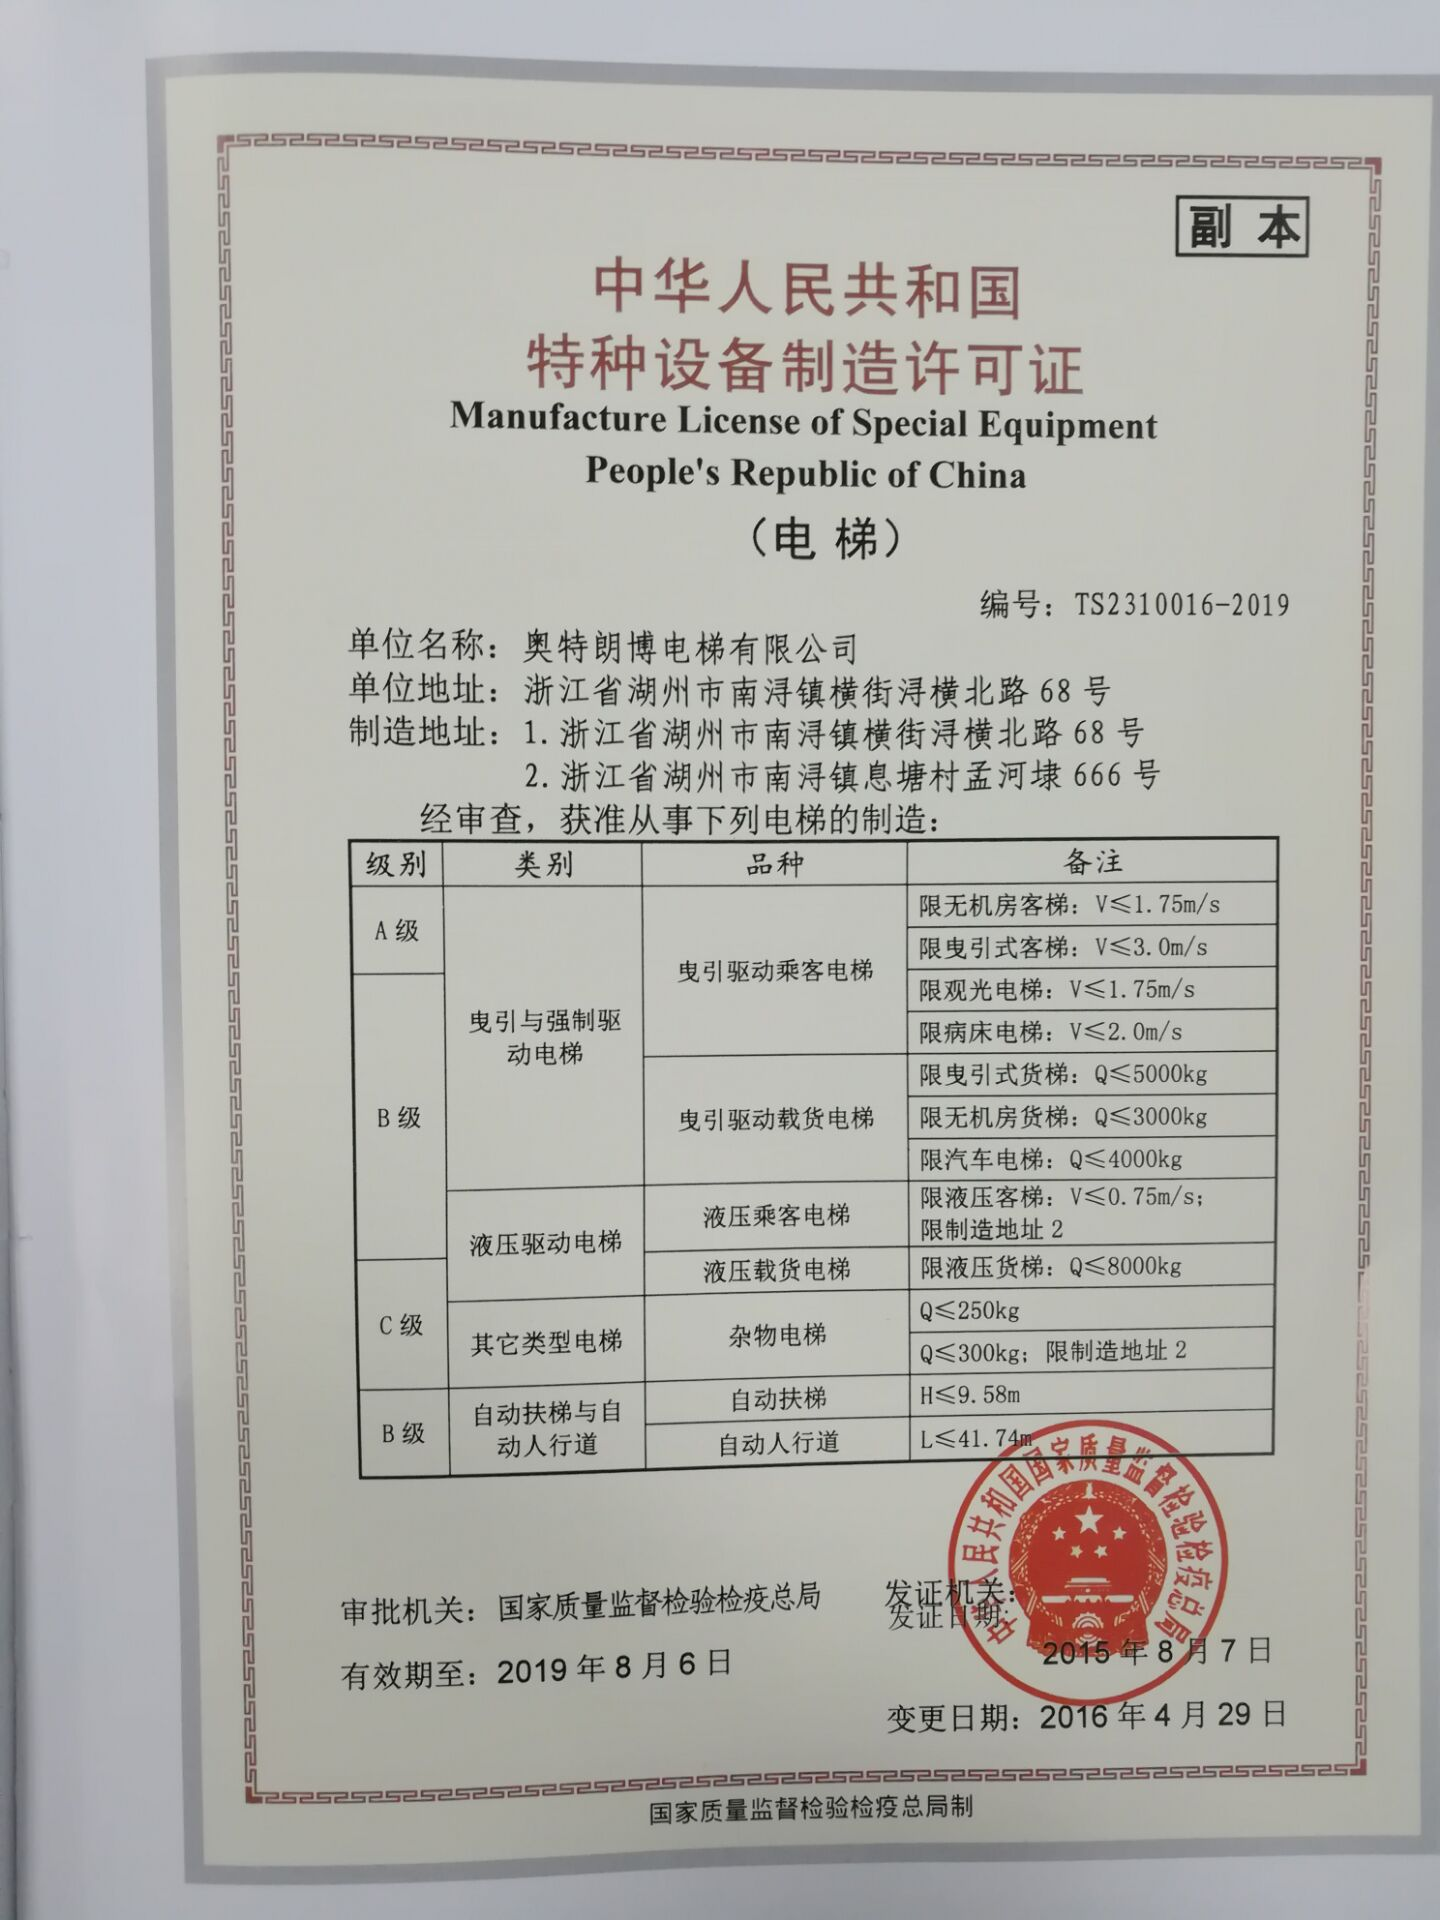 Manufacture Licence of Special Equipment People's Republic of China